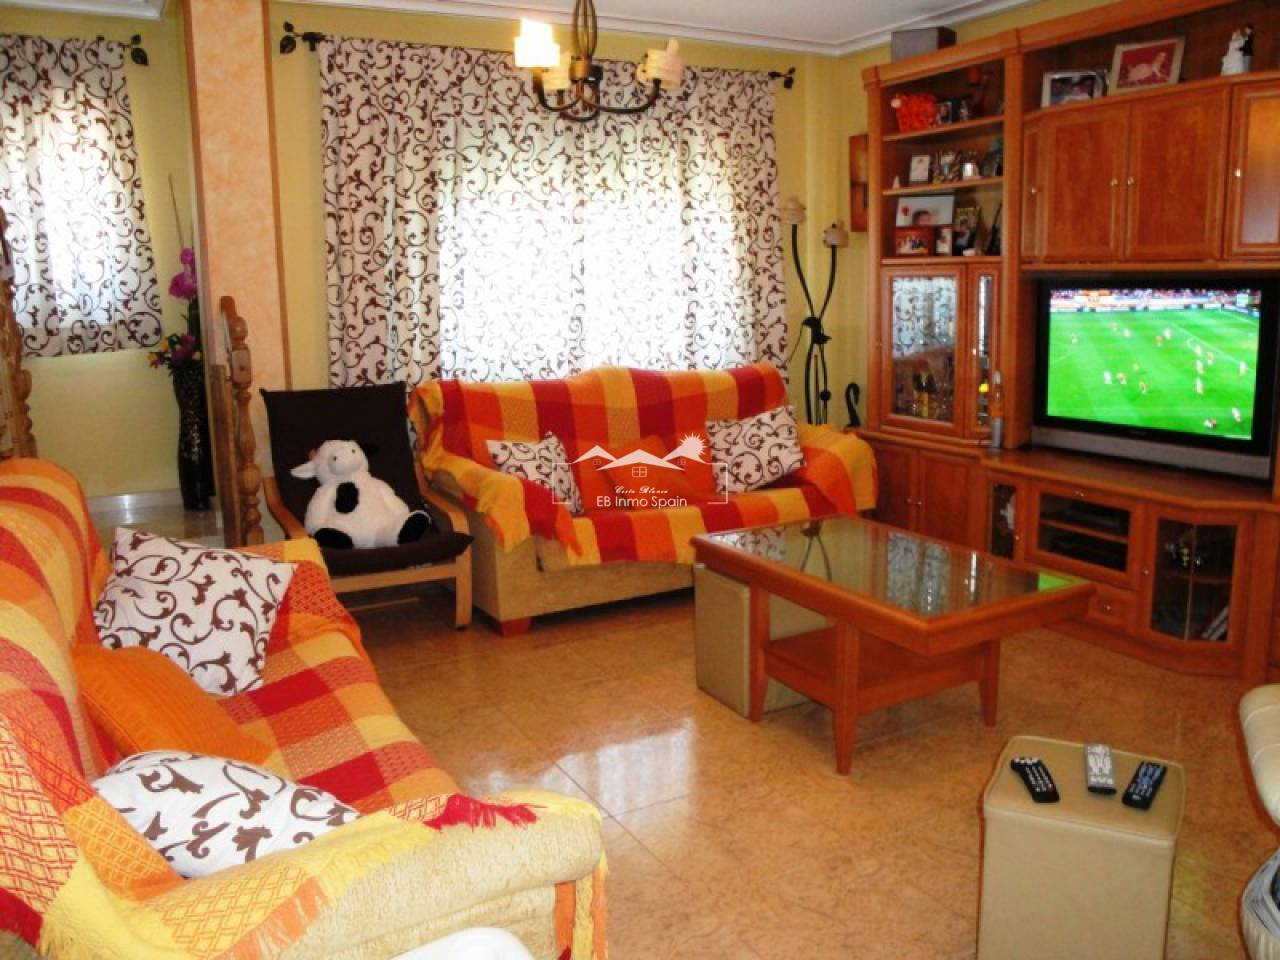 Seconde main - Bungalow - San Fulgencio